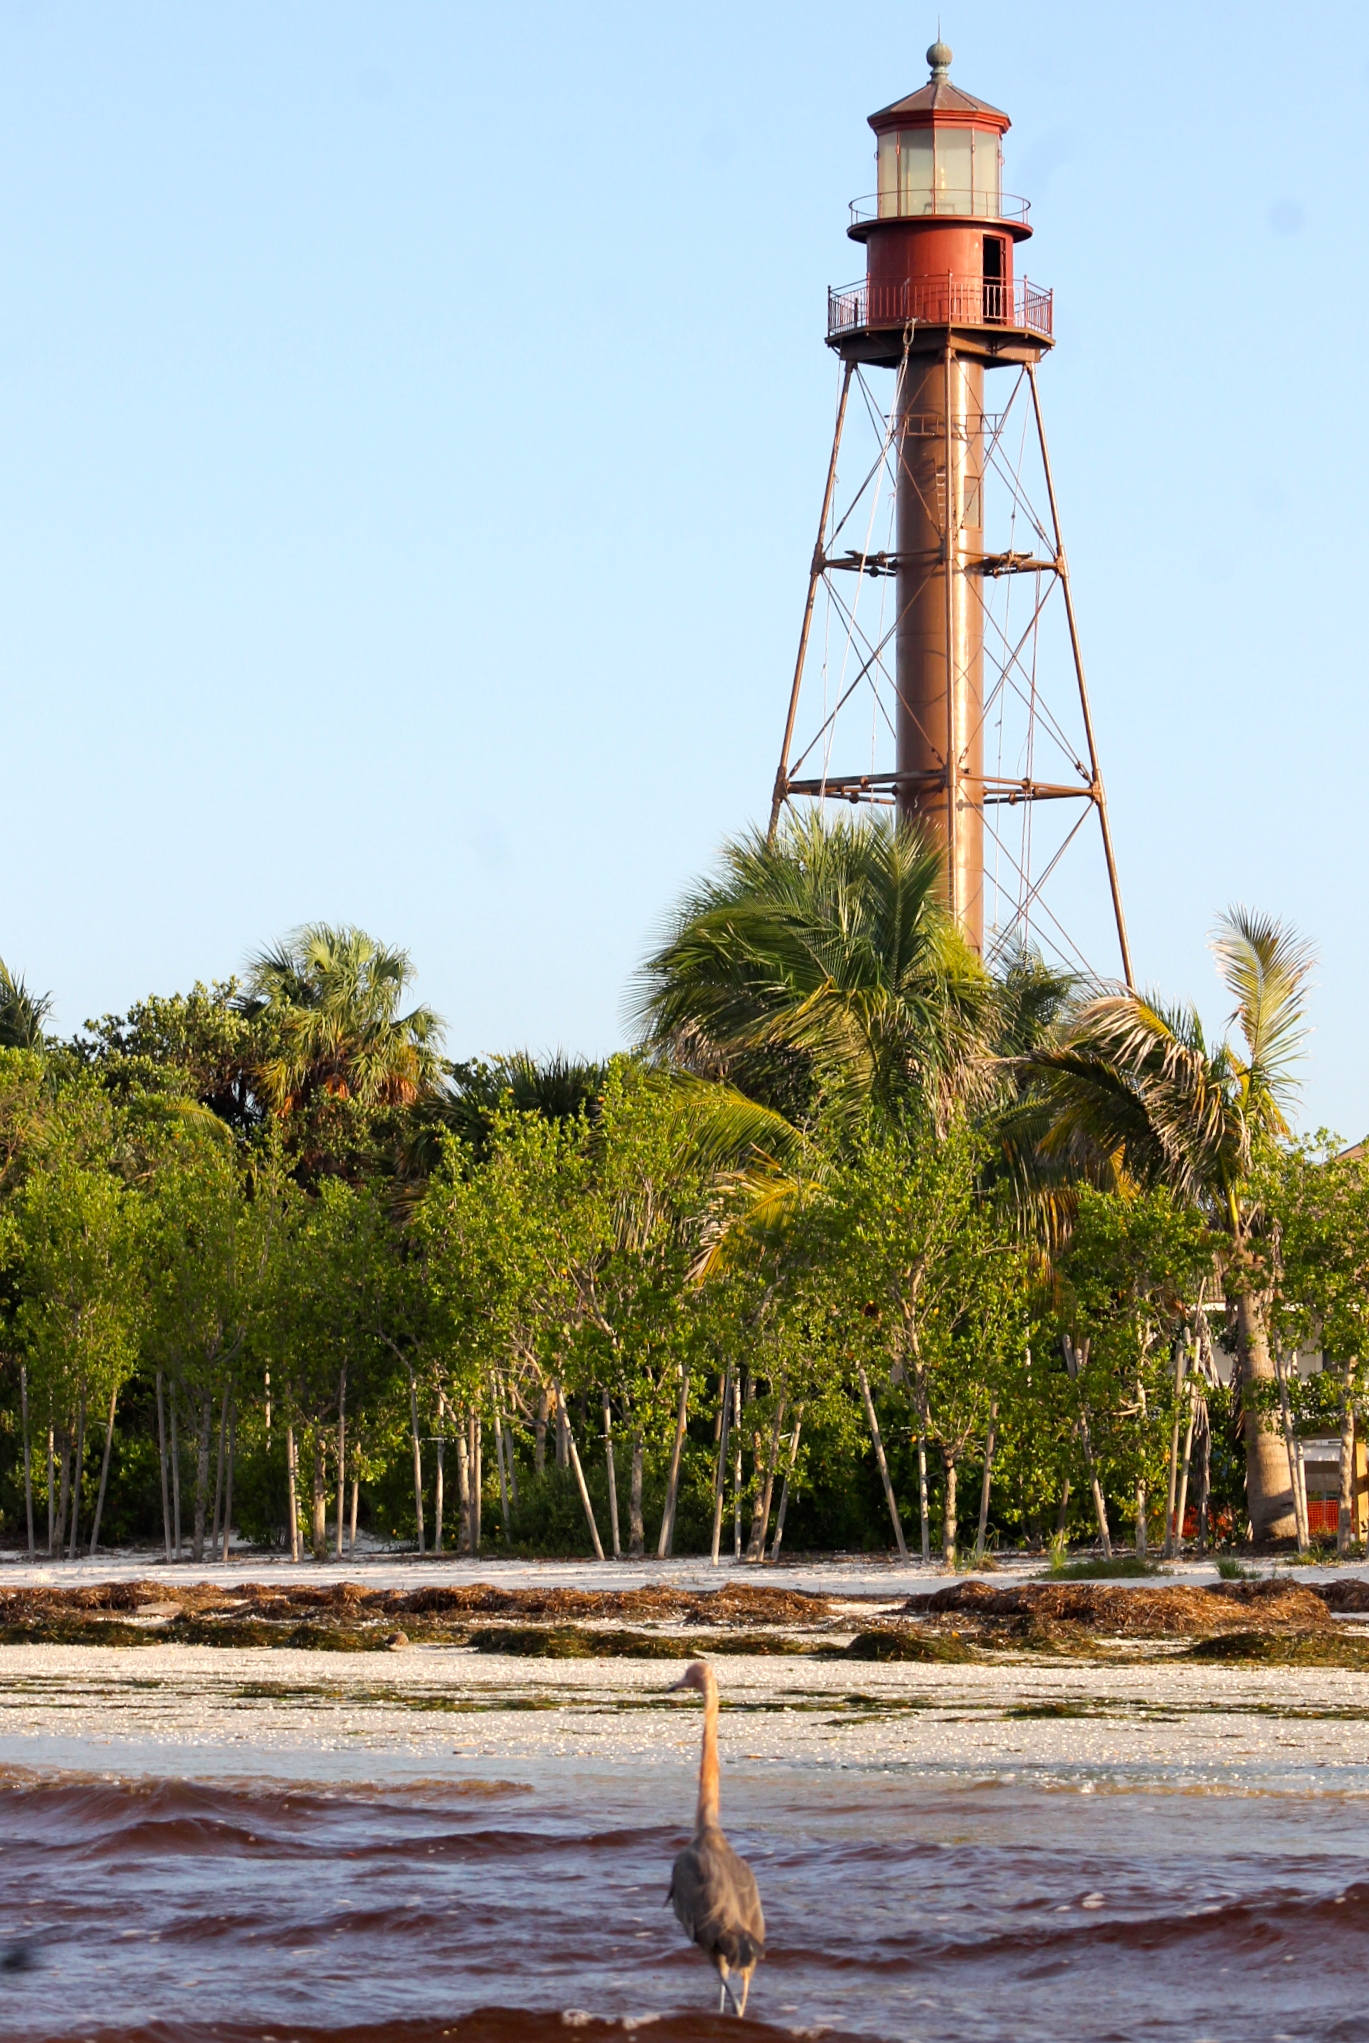 The Sanibel Lighthouse With A Great Blue Heron Wading In The Foreground.  Photo: Paula Bendfeldt Diaz.